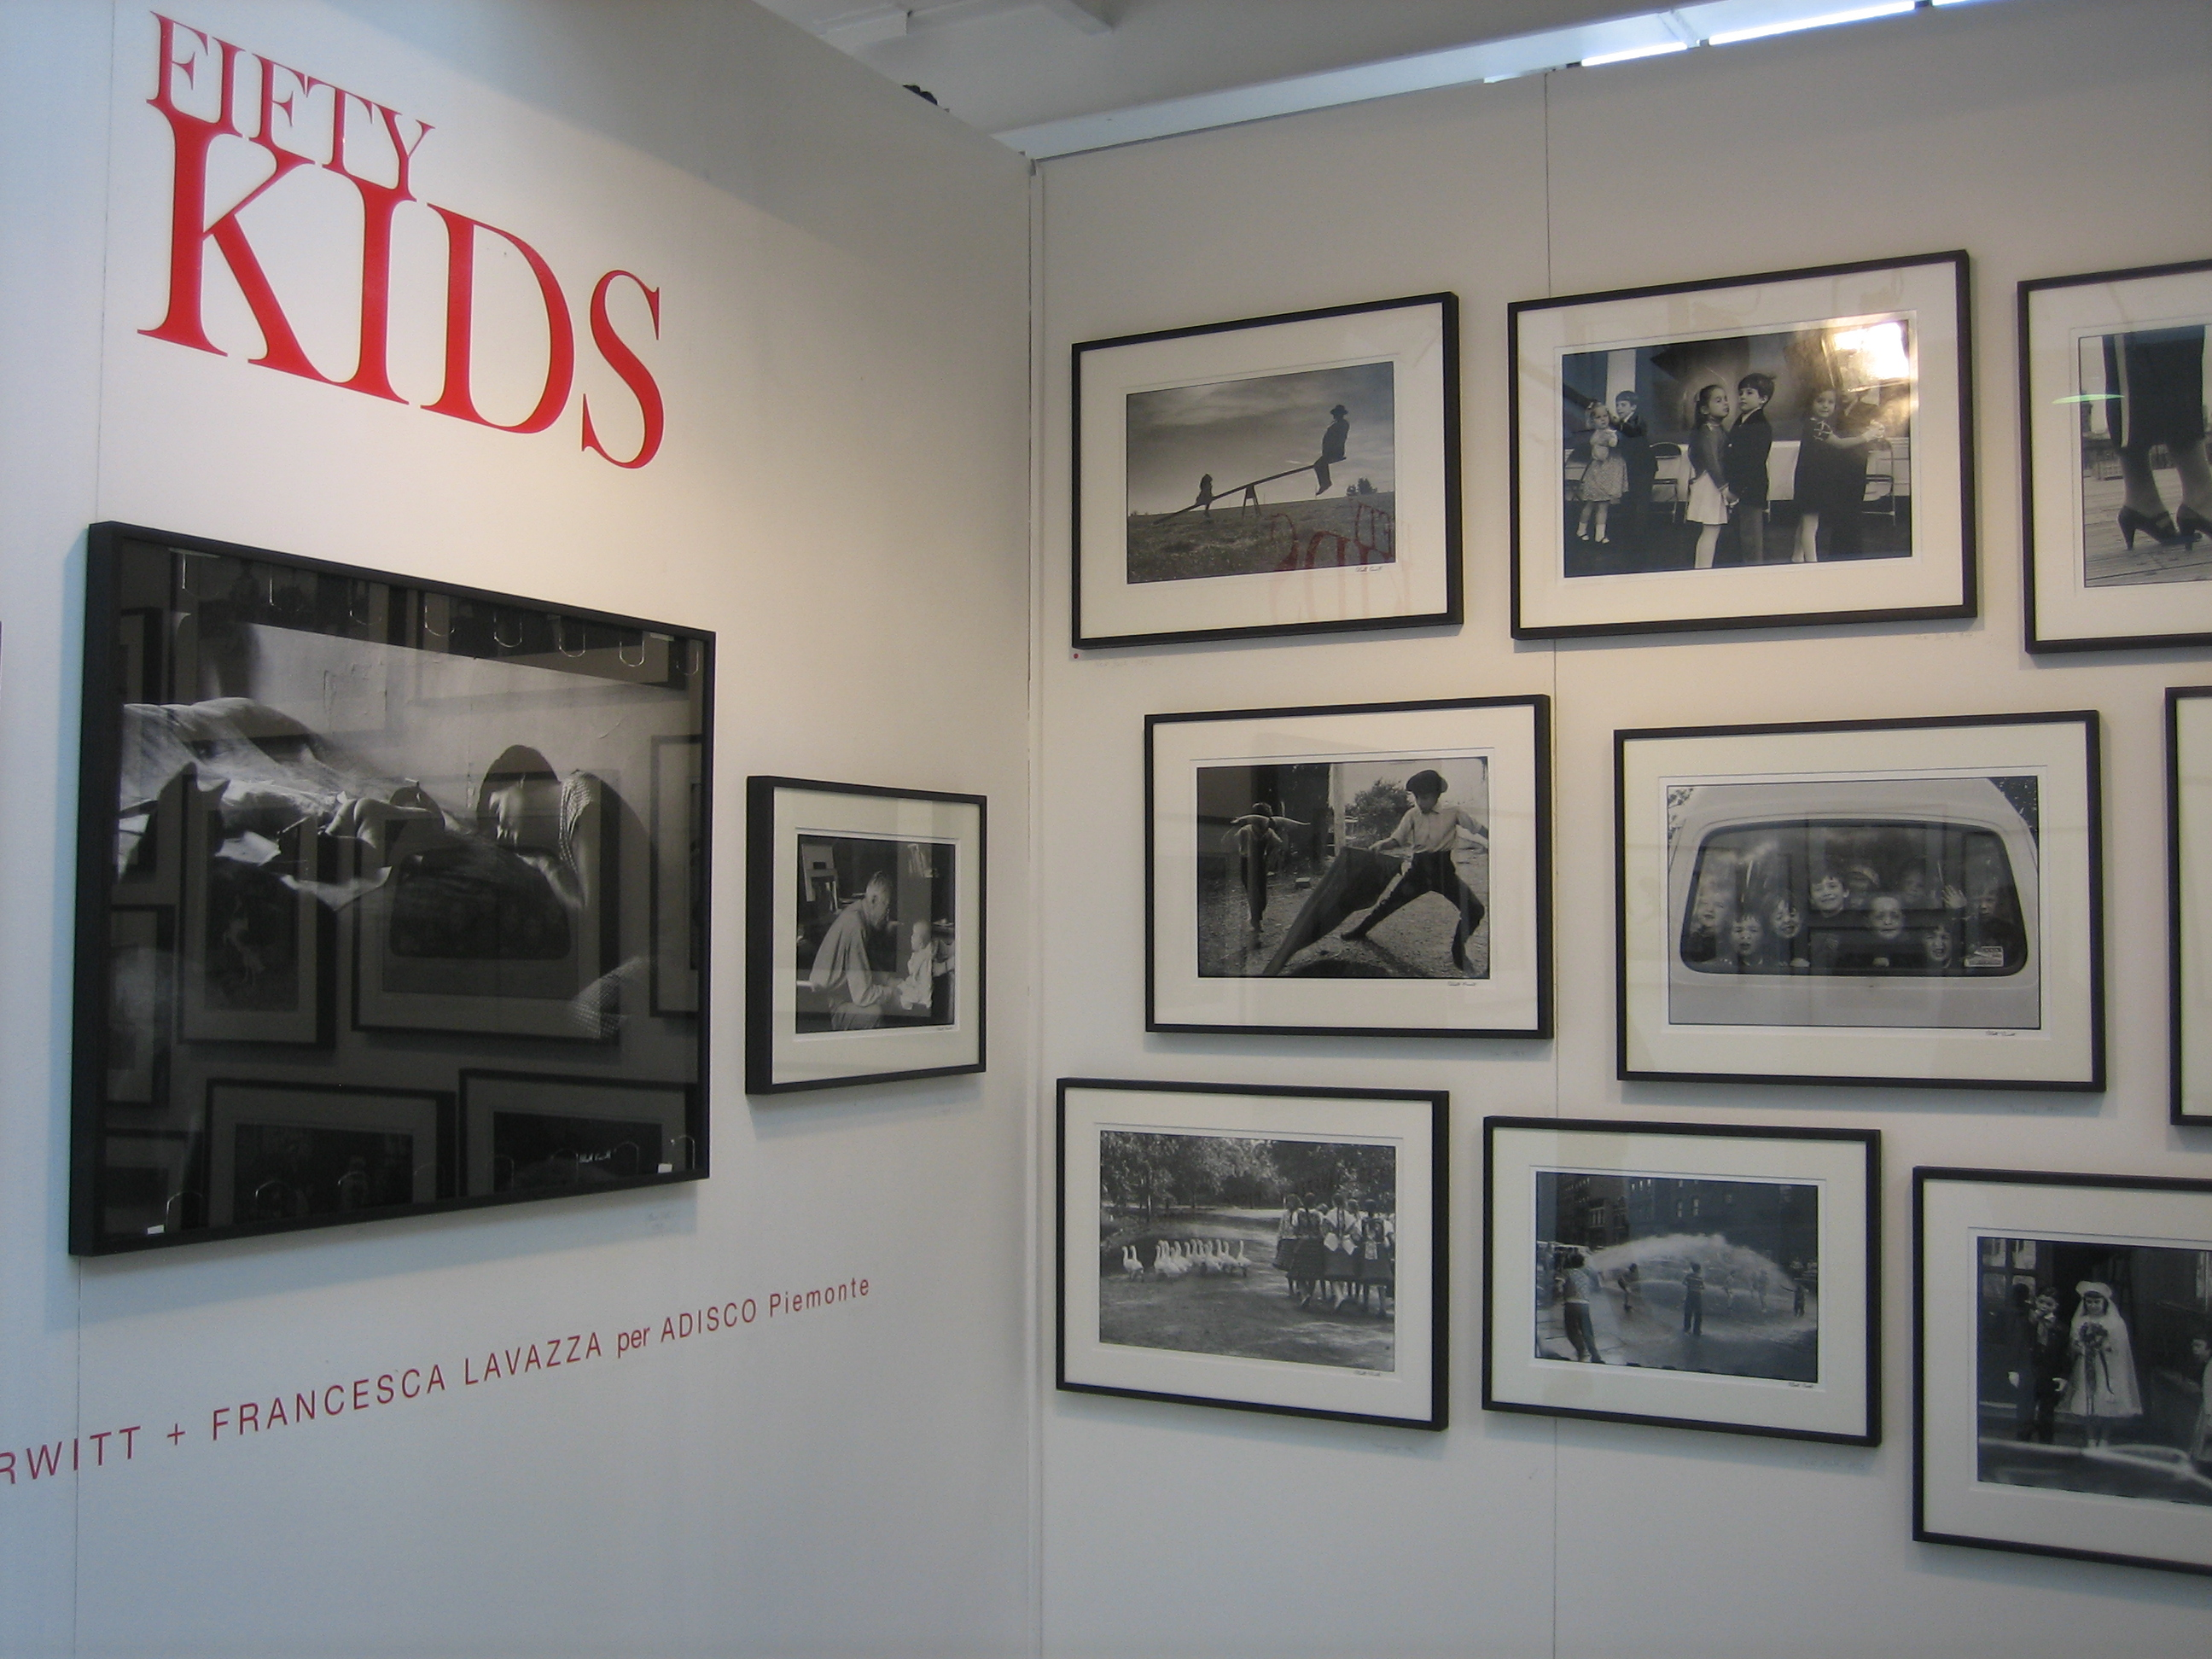 Elliott Erwitt - Fifty Kids, MIA Fair 1